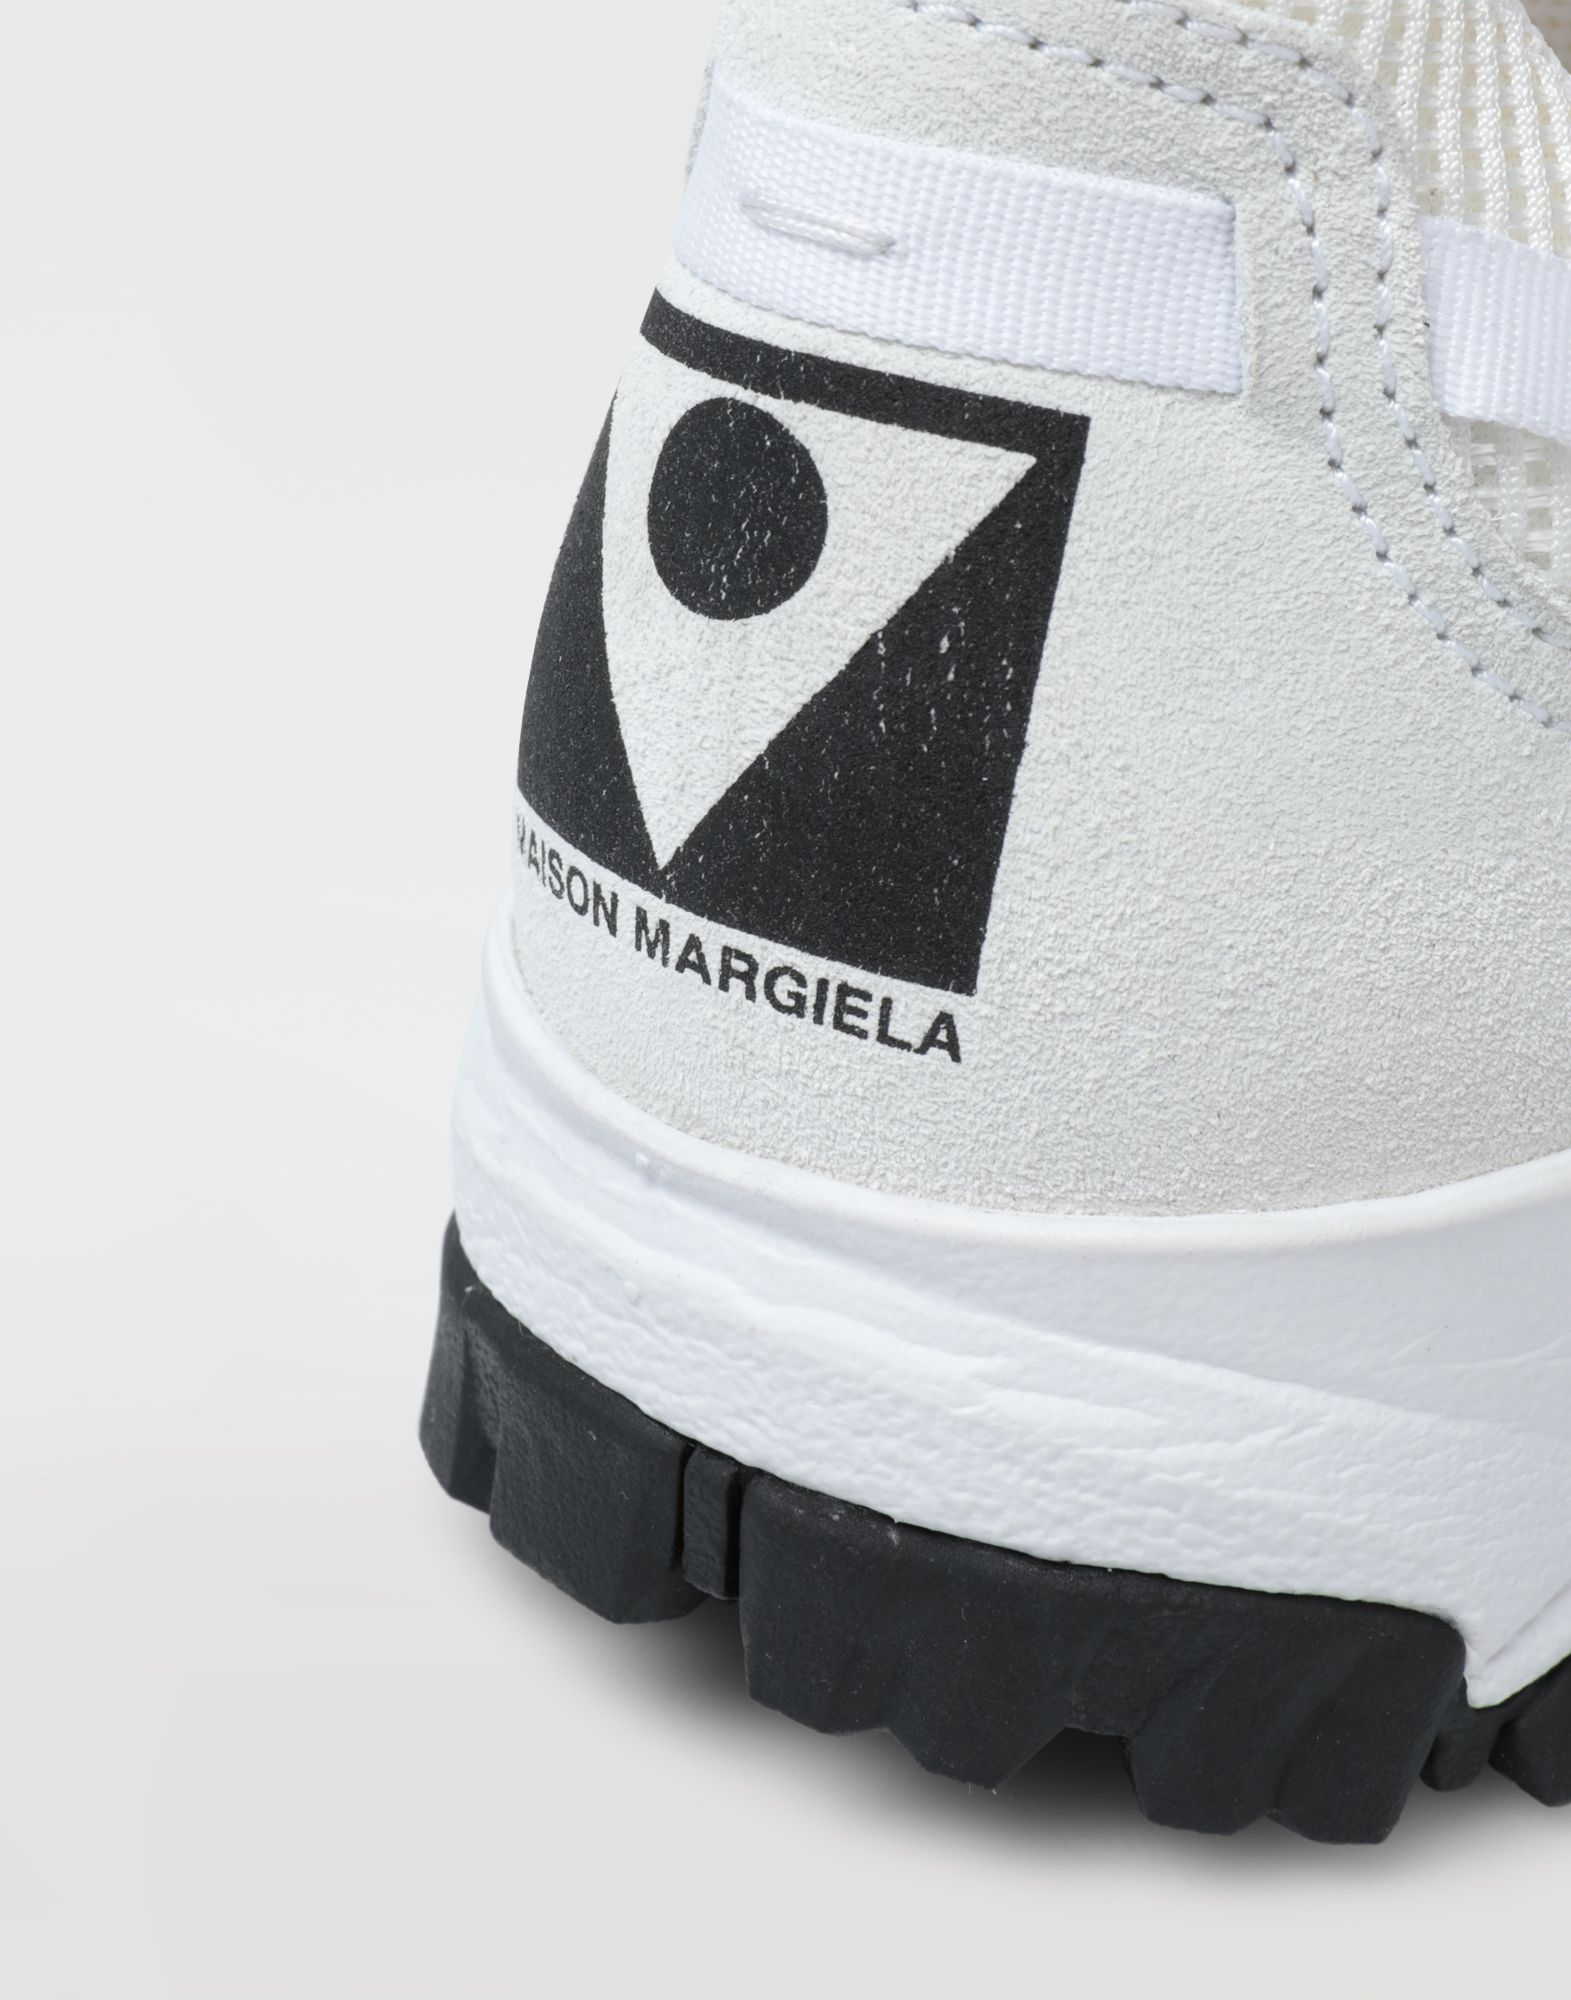 MAISON MARGIELA Sneakers Security Sneakers Herr b